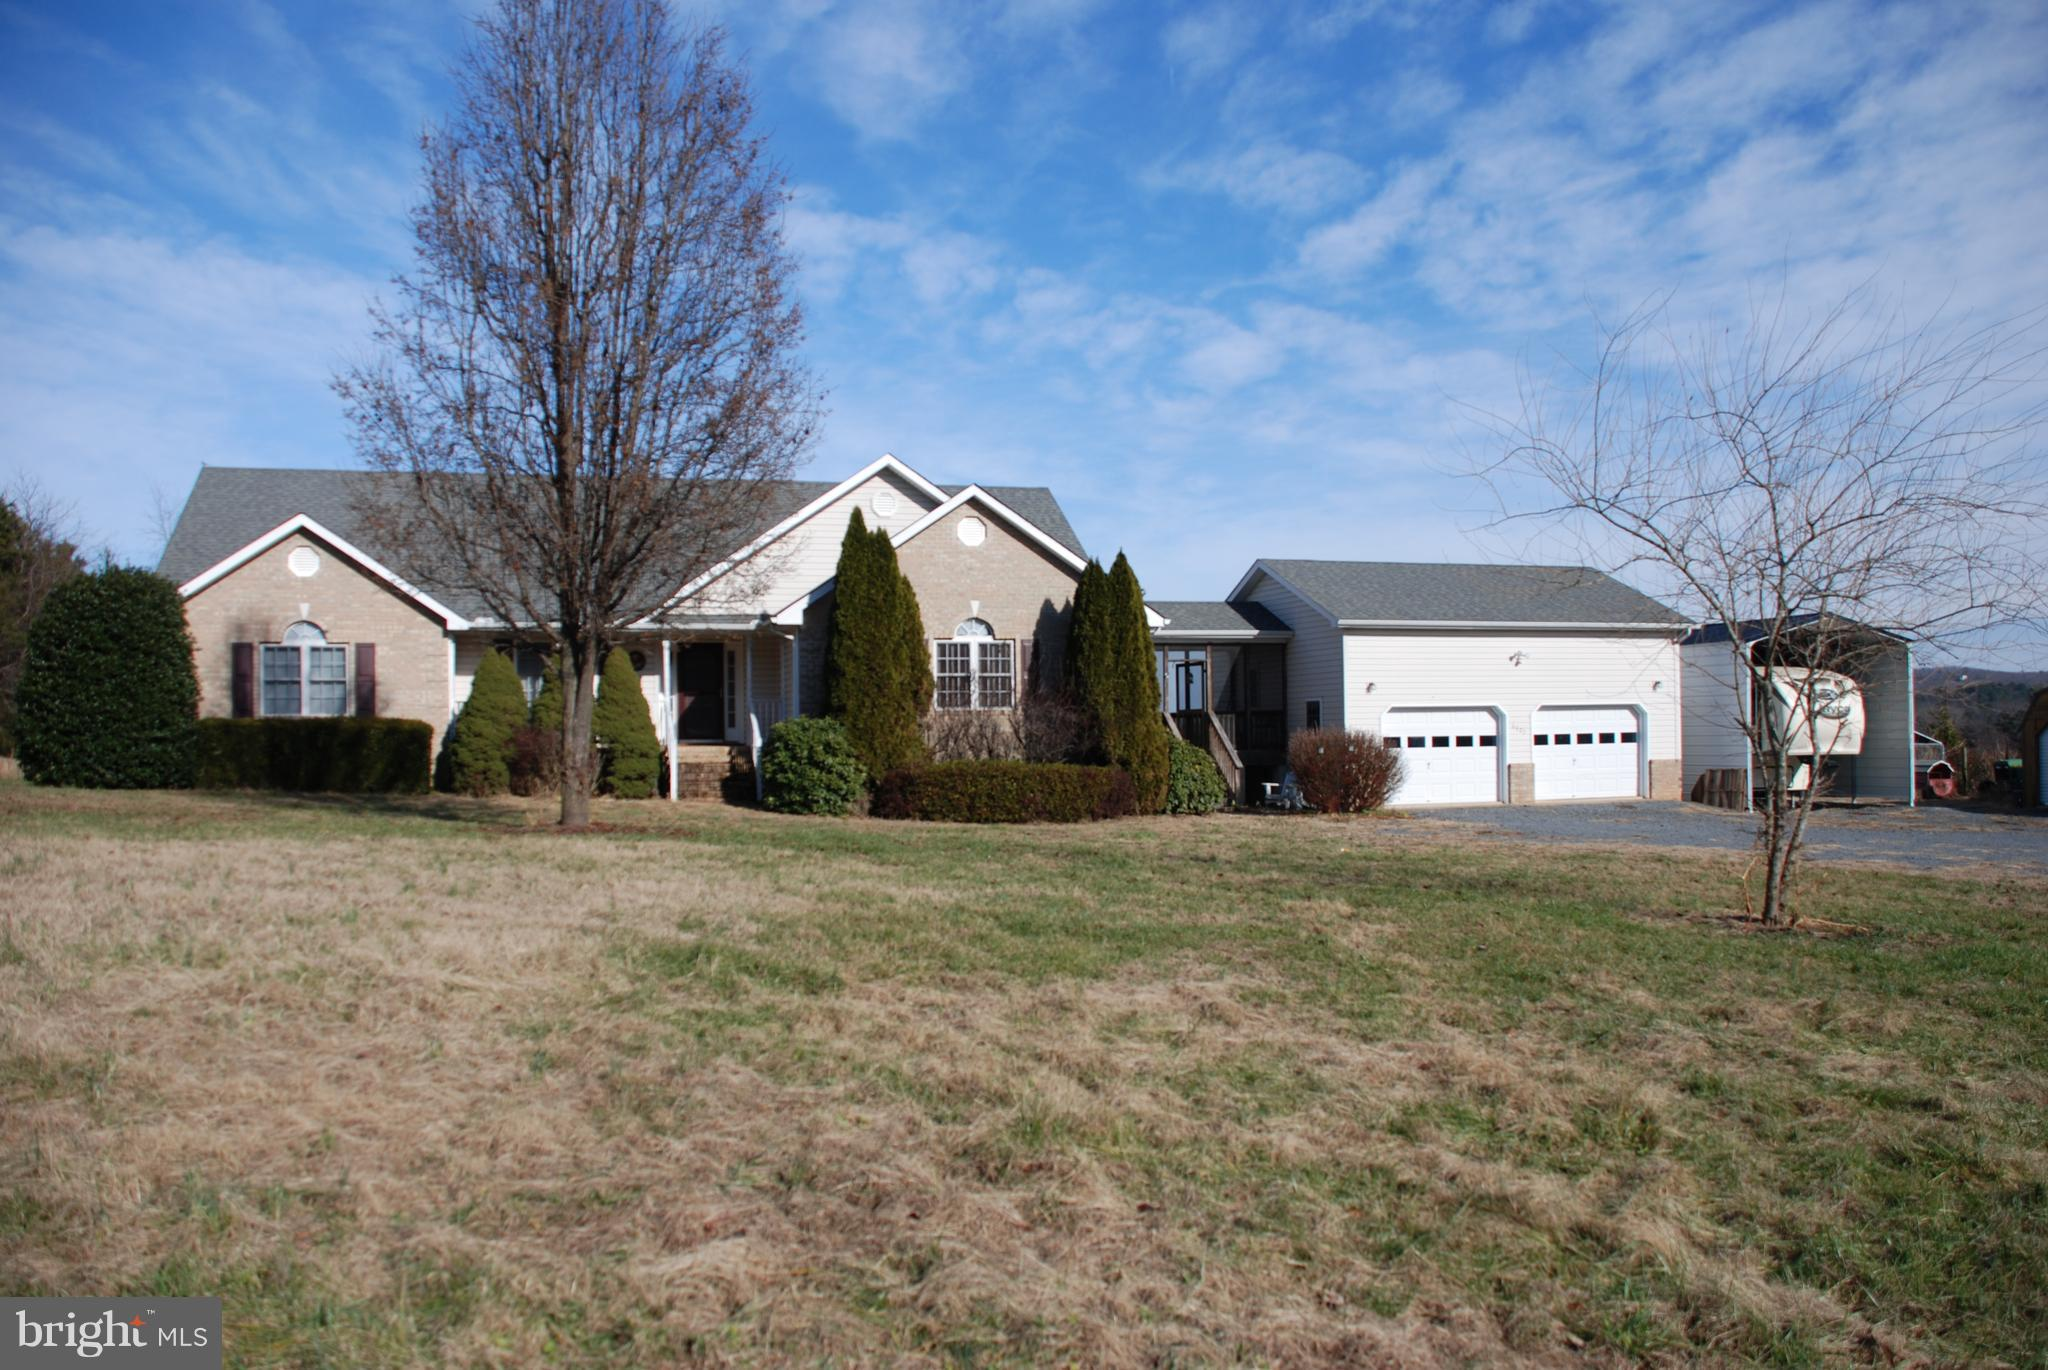 6325 SPERRYVILLE PIKE, BOSTON, VA 22713